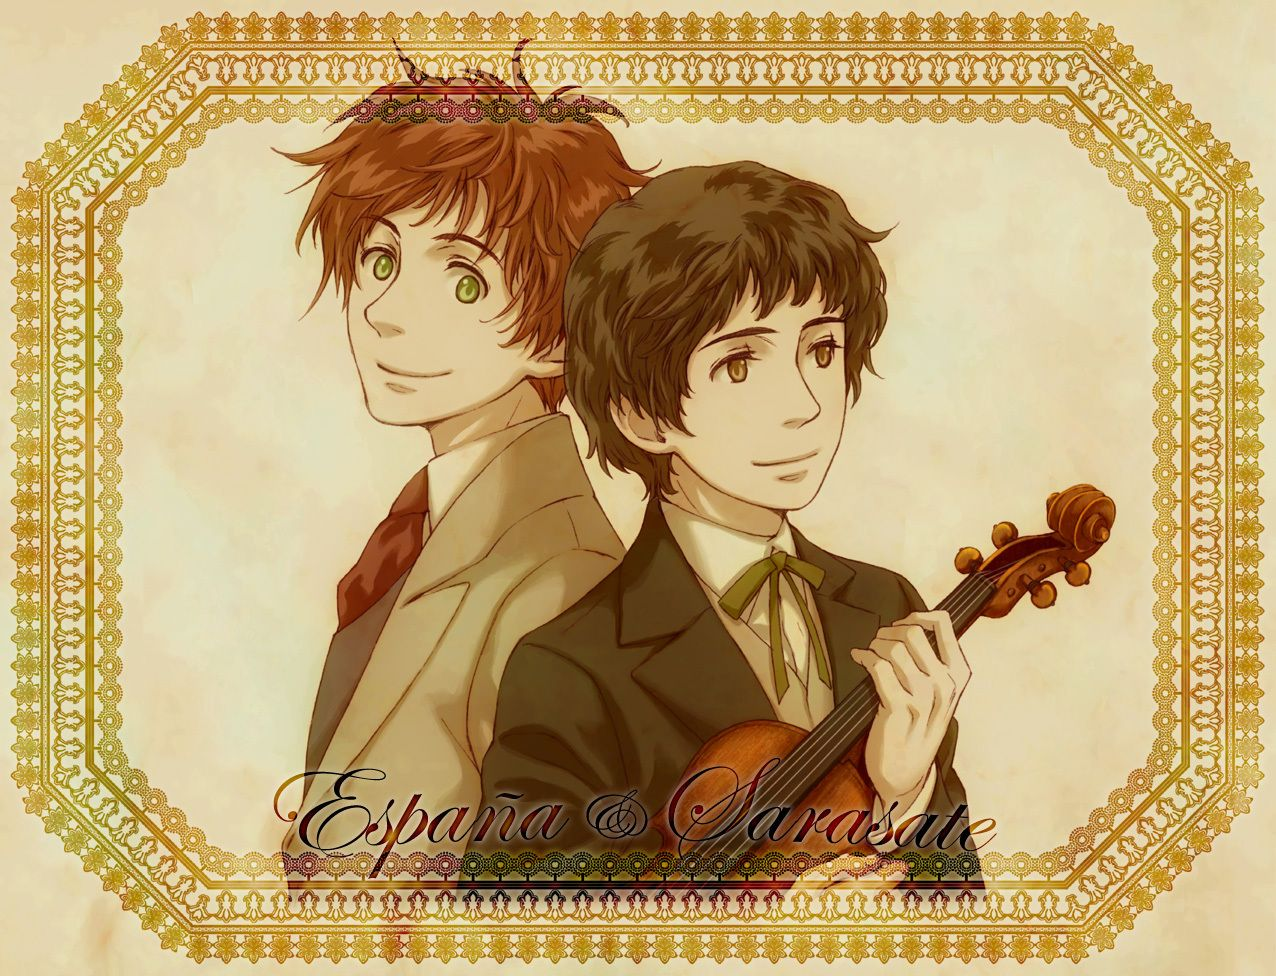 Hetalia characters with Classical composers: Antonio and Sarasate. Now there's a name that's new to me; I'll have to check him out. - Art by 天宮斎賀 on Pixiv, found via losthitsu.tumblr.com